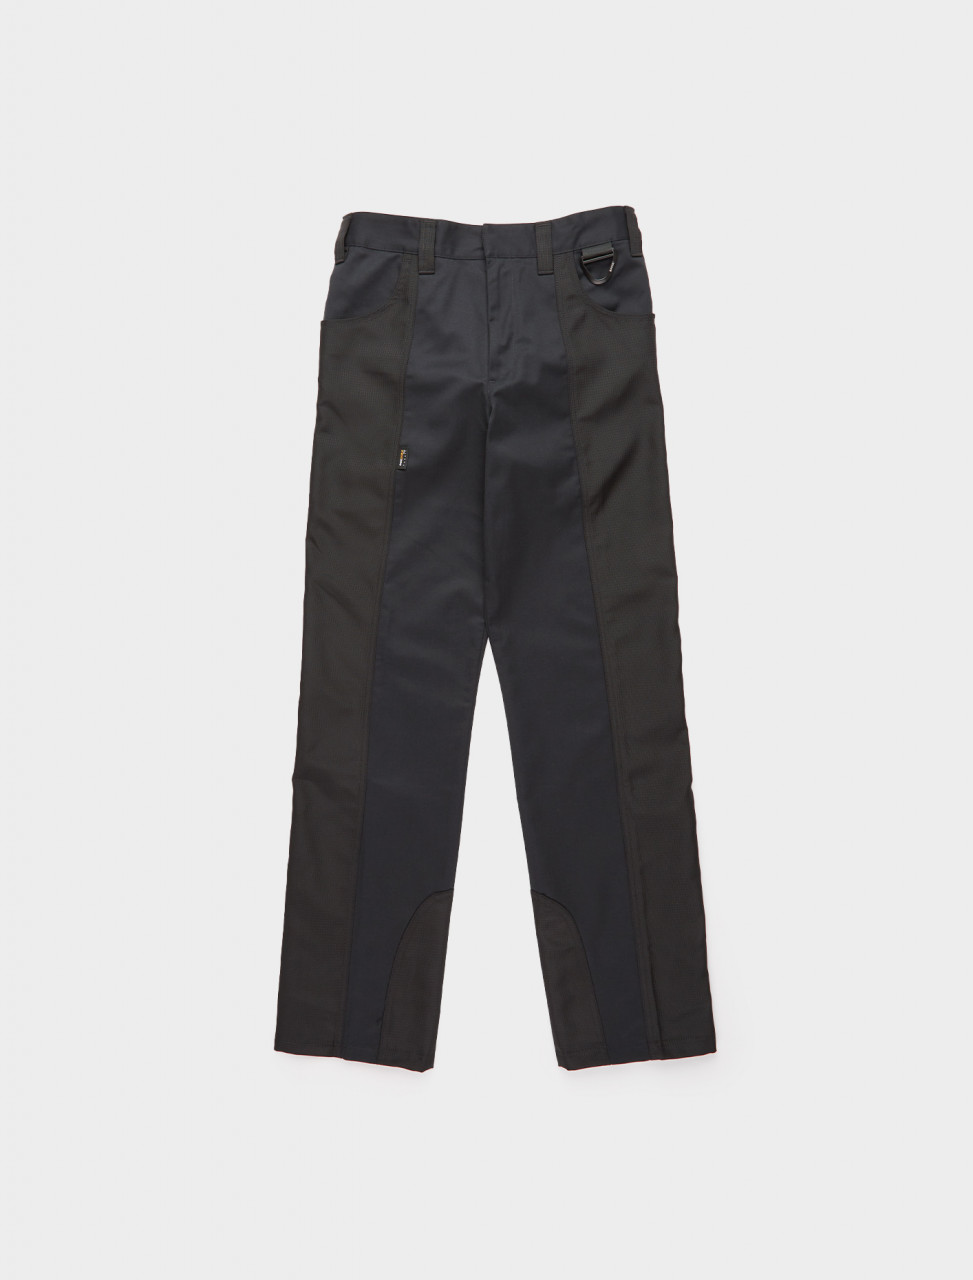 347-AW20TR03-B AFFIX DUO TONE WORK PANTS BLACK